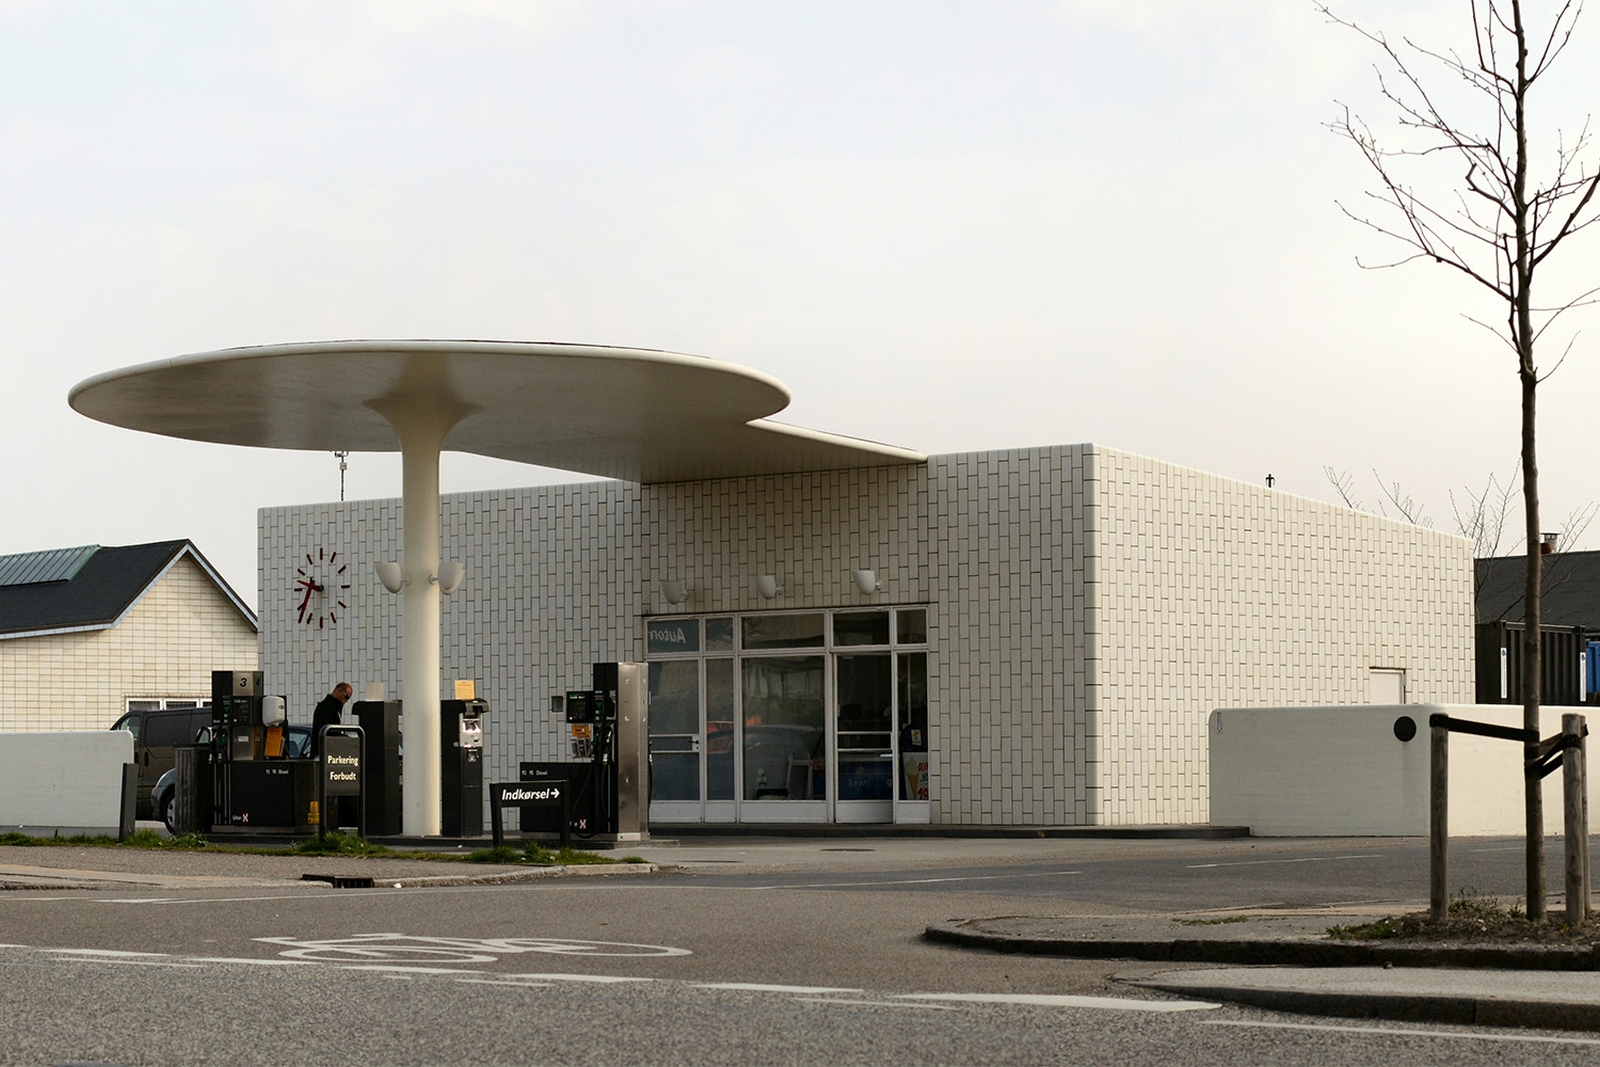 The Skovshoved Tankstation is a functionalist style gas station in Skovshoved, Denmark, designed by Arne Jacobsen, opened in 1936.